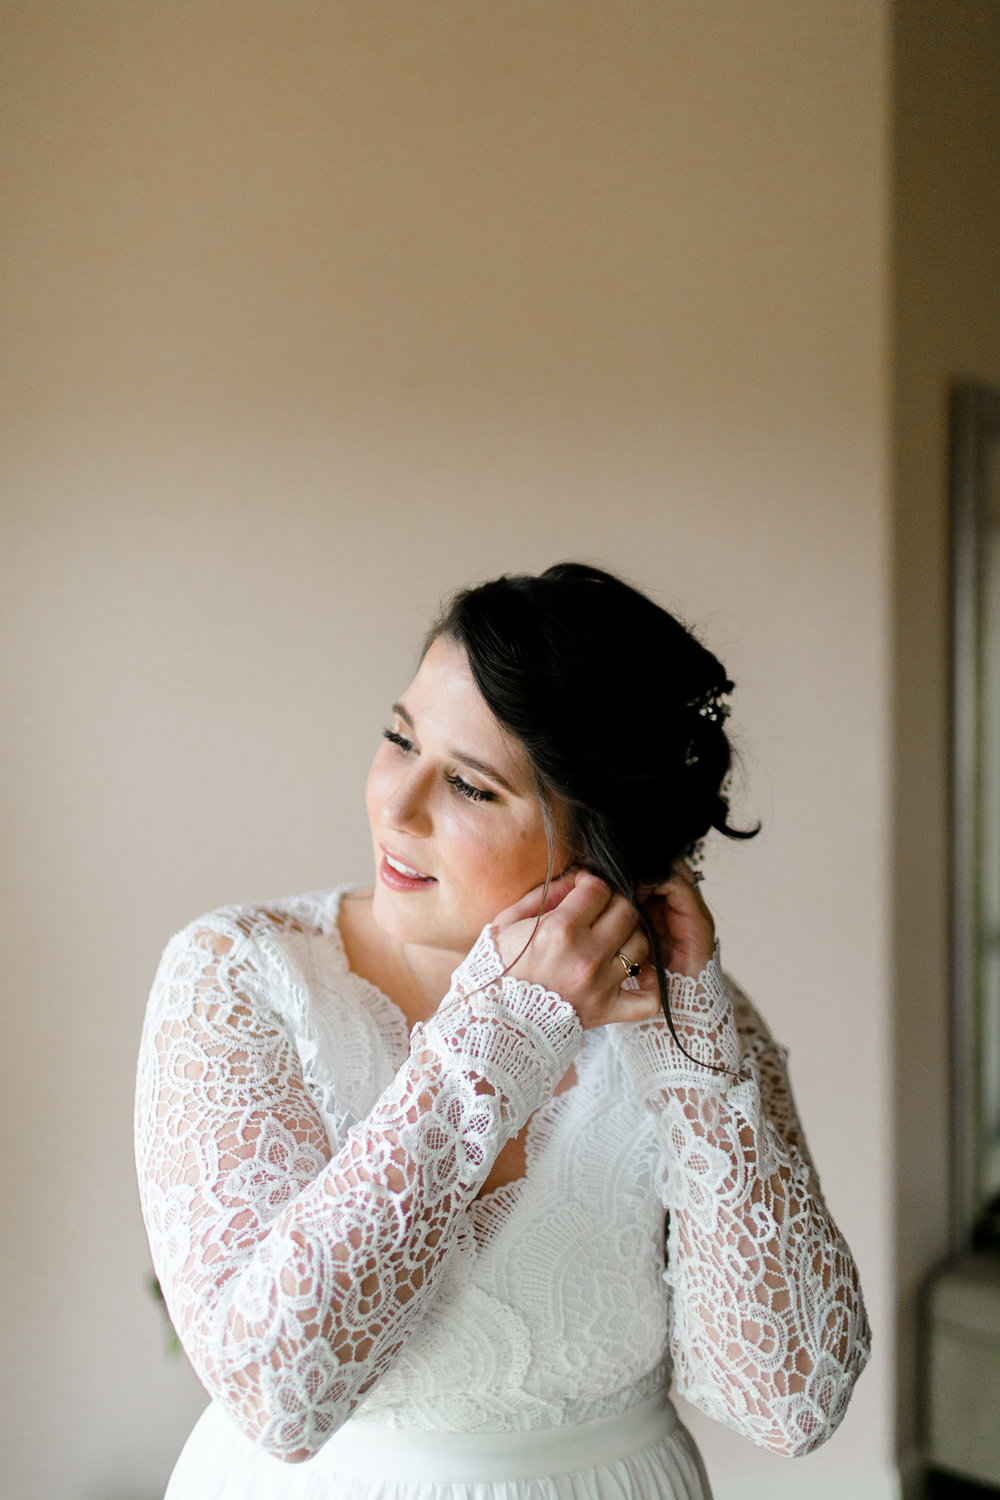 Austin_Texas_Fine_Art_Wedding_Photographer_Kayla_Snell_Photography_Antebellum_Oaks129.jpg